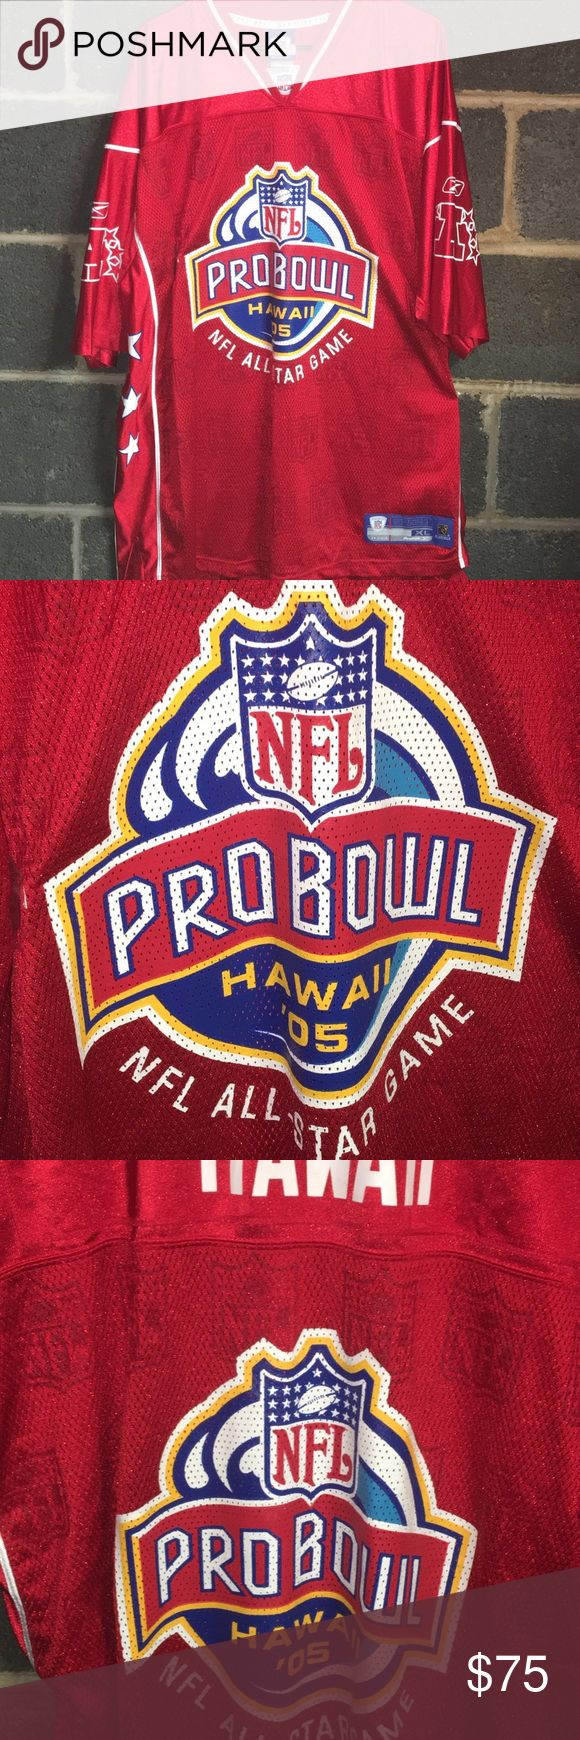 Reebok 2oo5 NFL Pro Bowl Game Football Jersey Rare 2005 Men's XL Reebok NFL Pro Bowl Football Jersey. Jersey is in excellent condition with no major flaws. One of a kind throwback. Reebok Shirts Tees - Short Sleeve